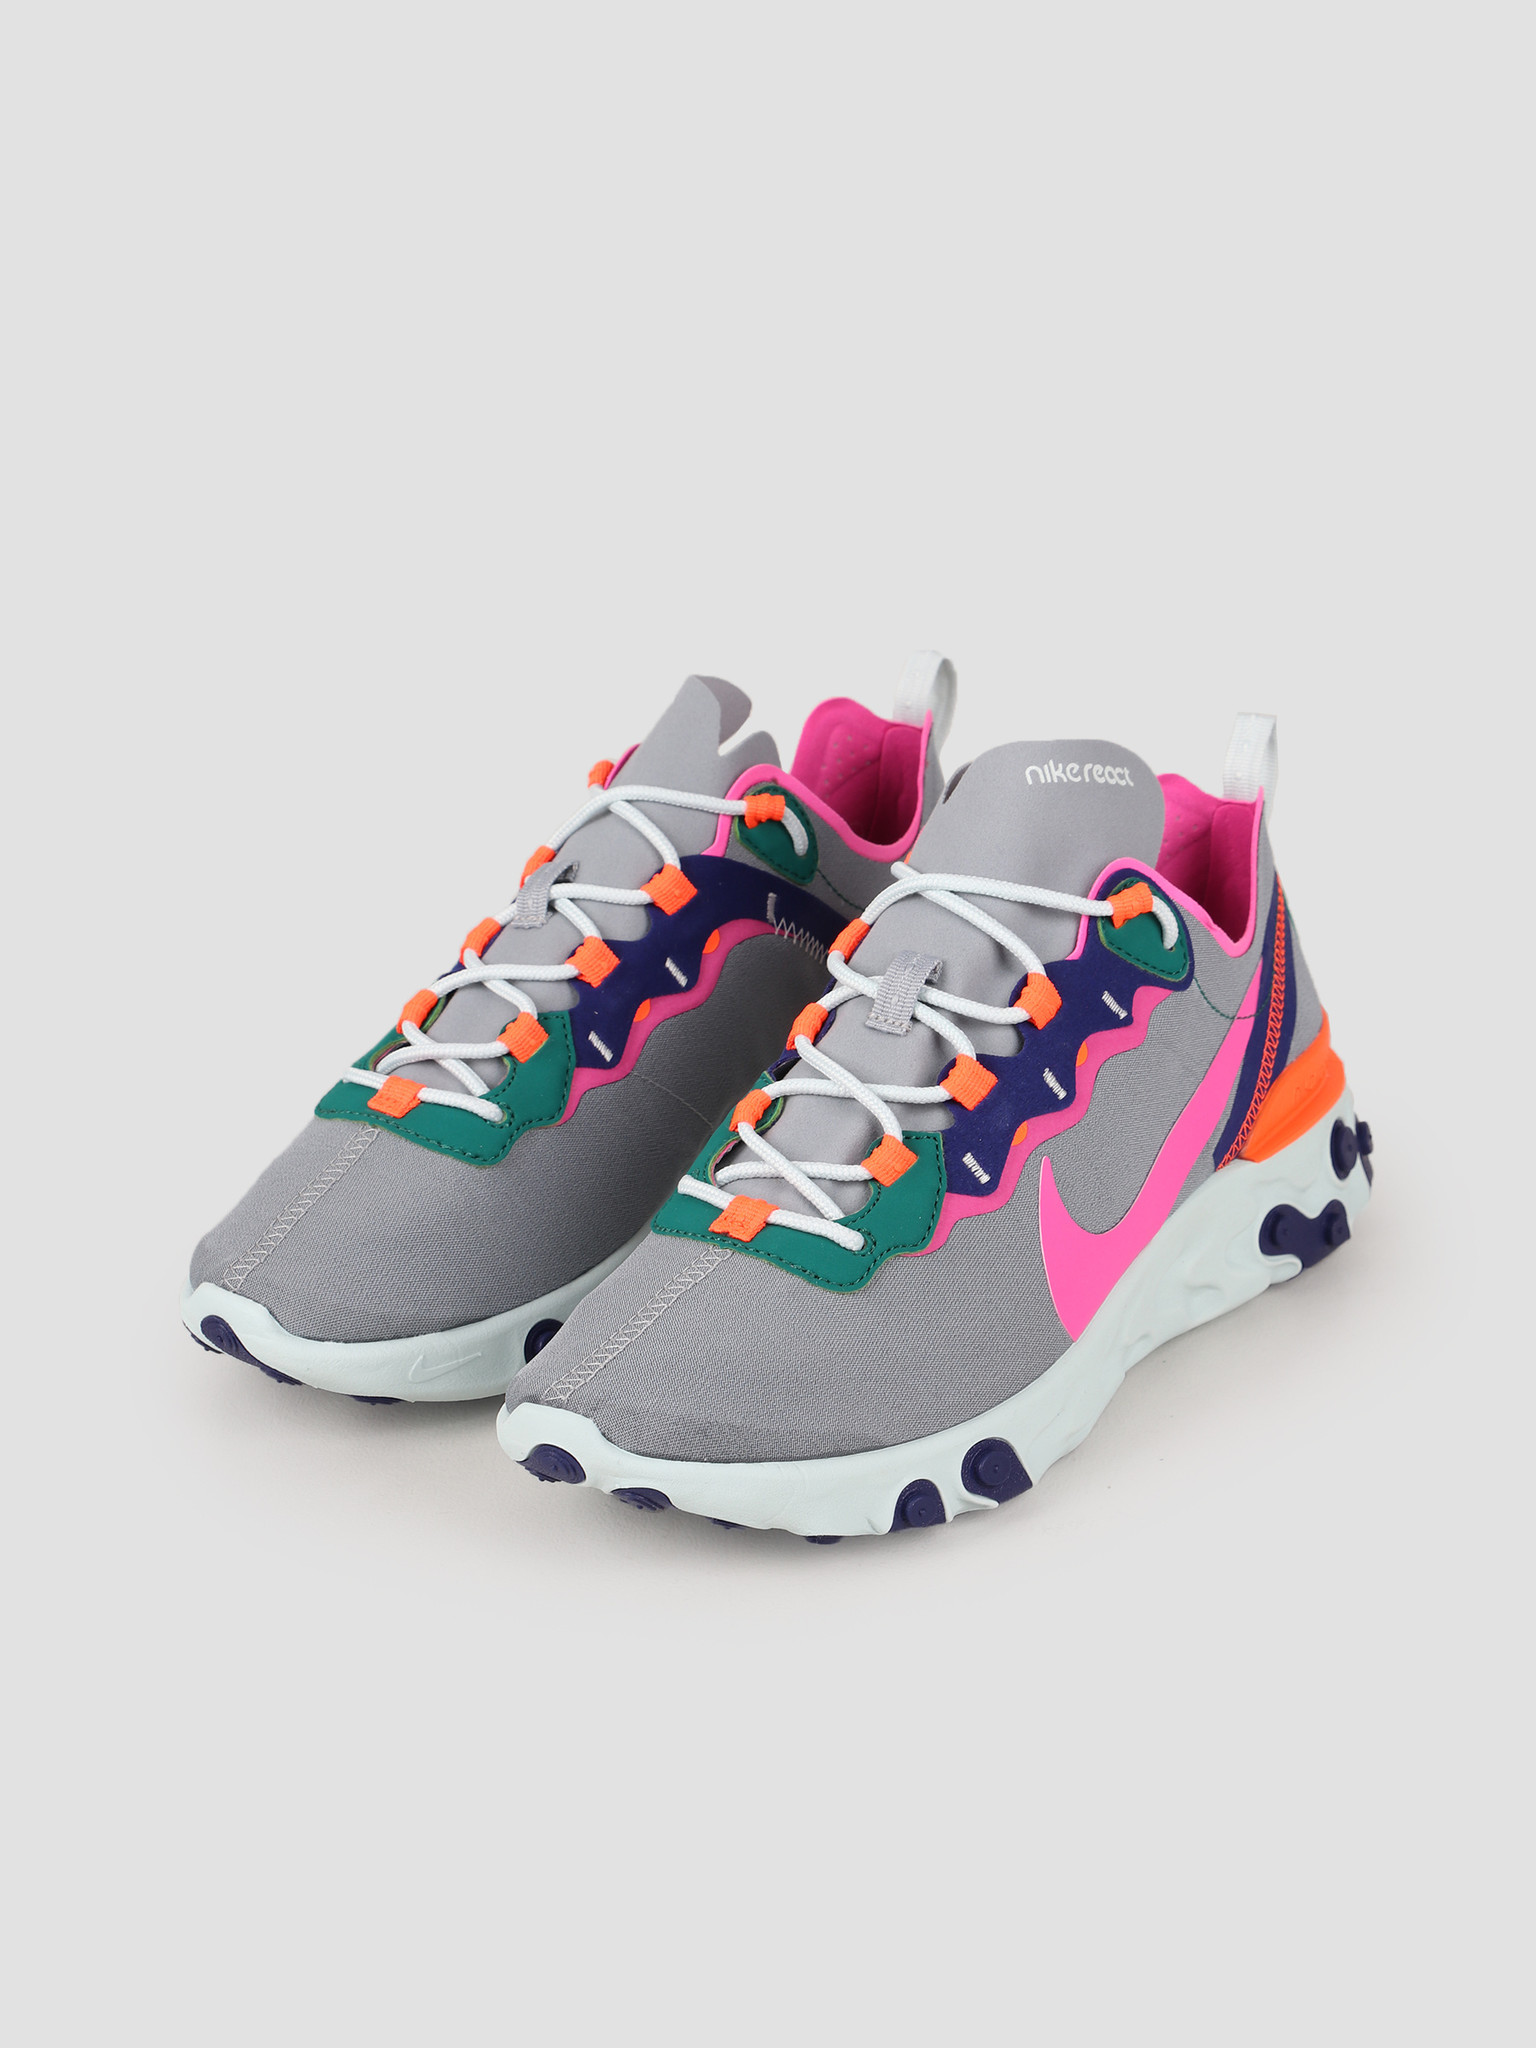 Nike Nike React Element 55 Wolf Grey Laser Fuchsia Hyper Crimson BQ2728-006